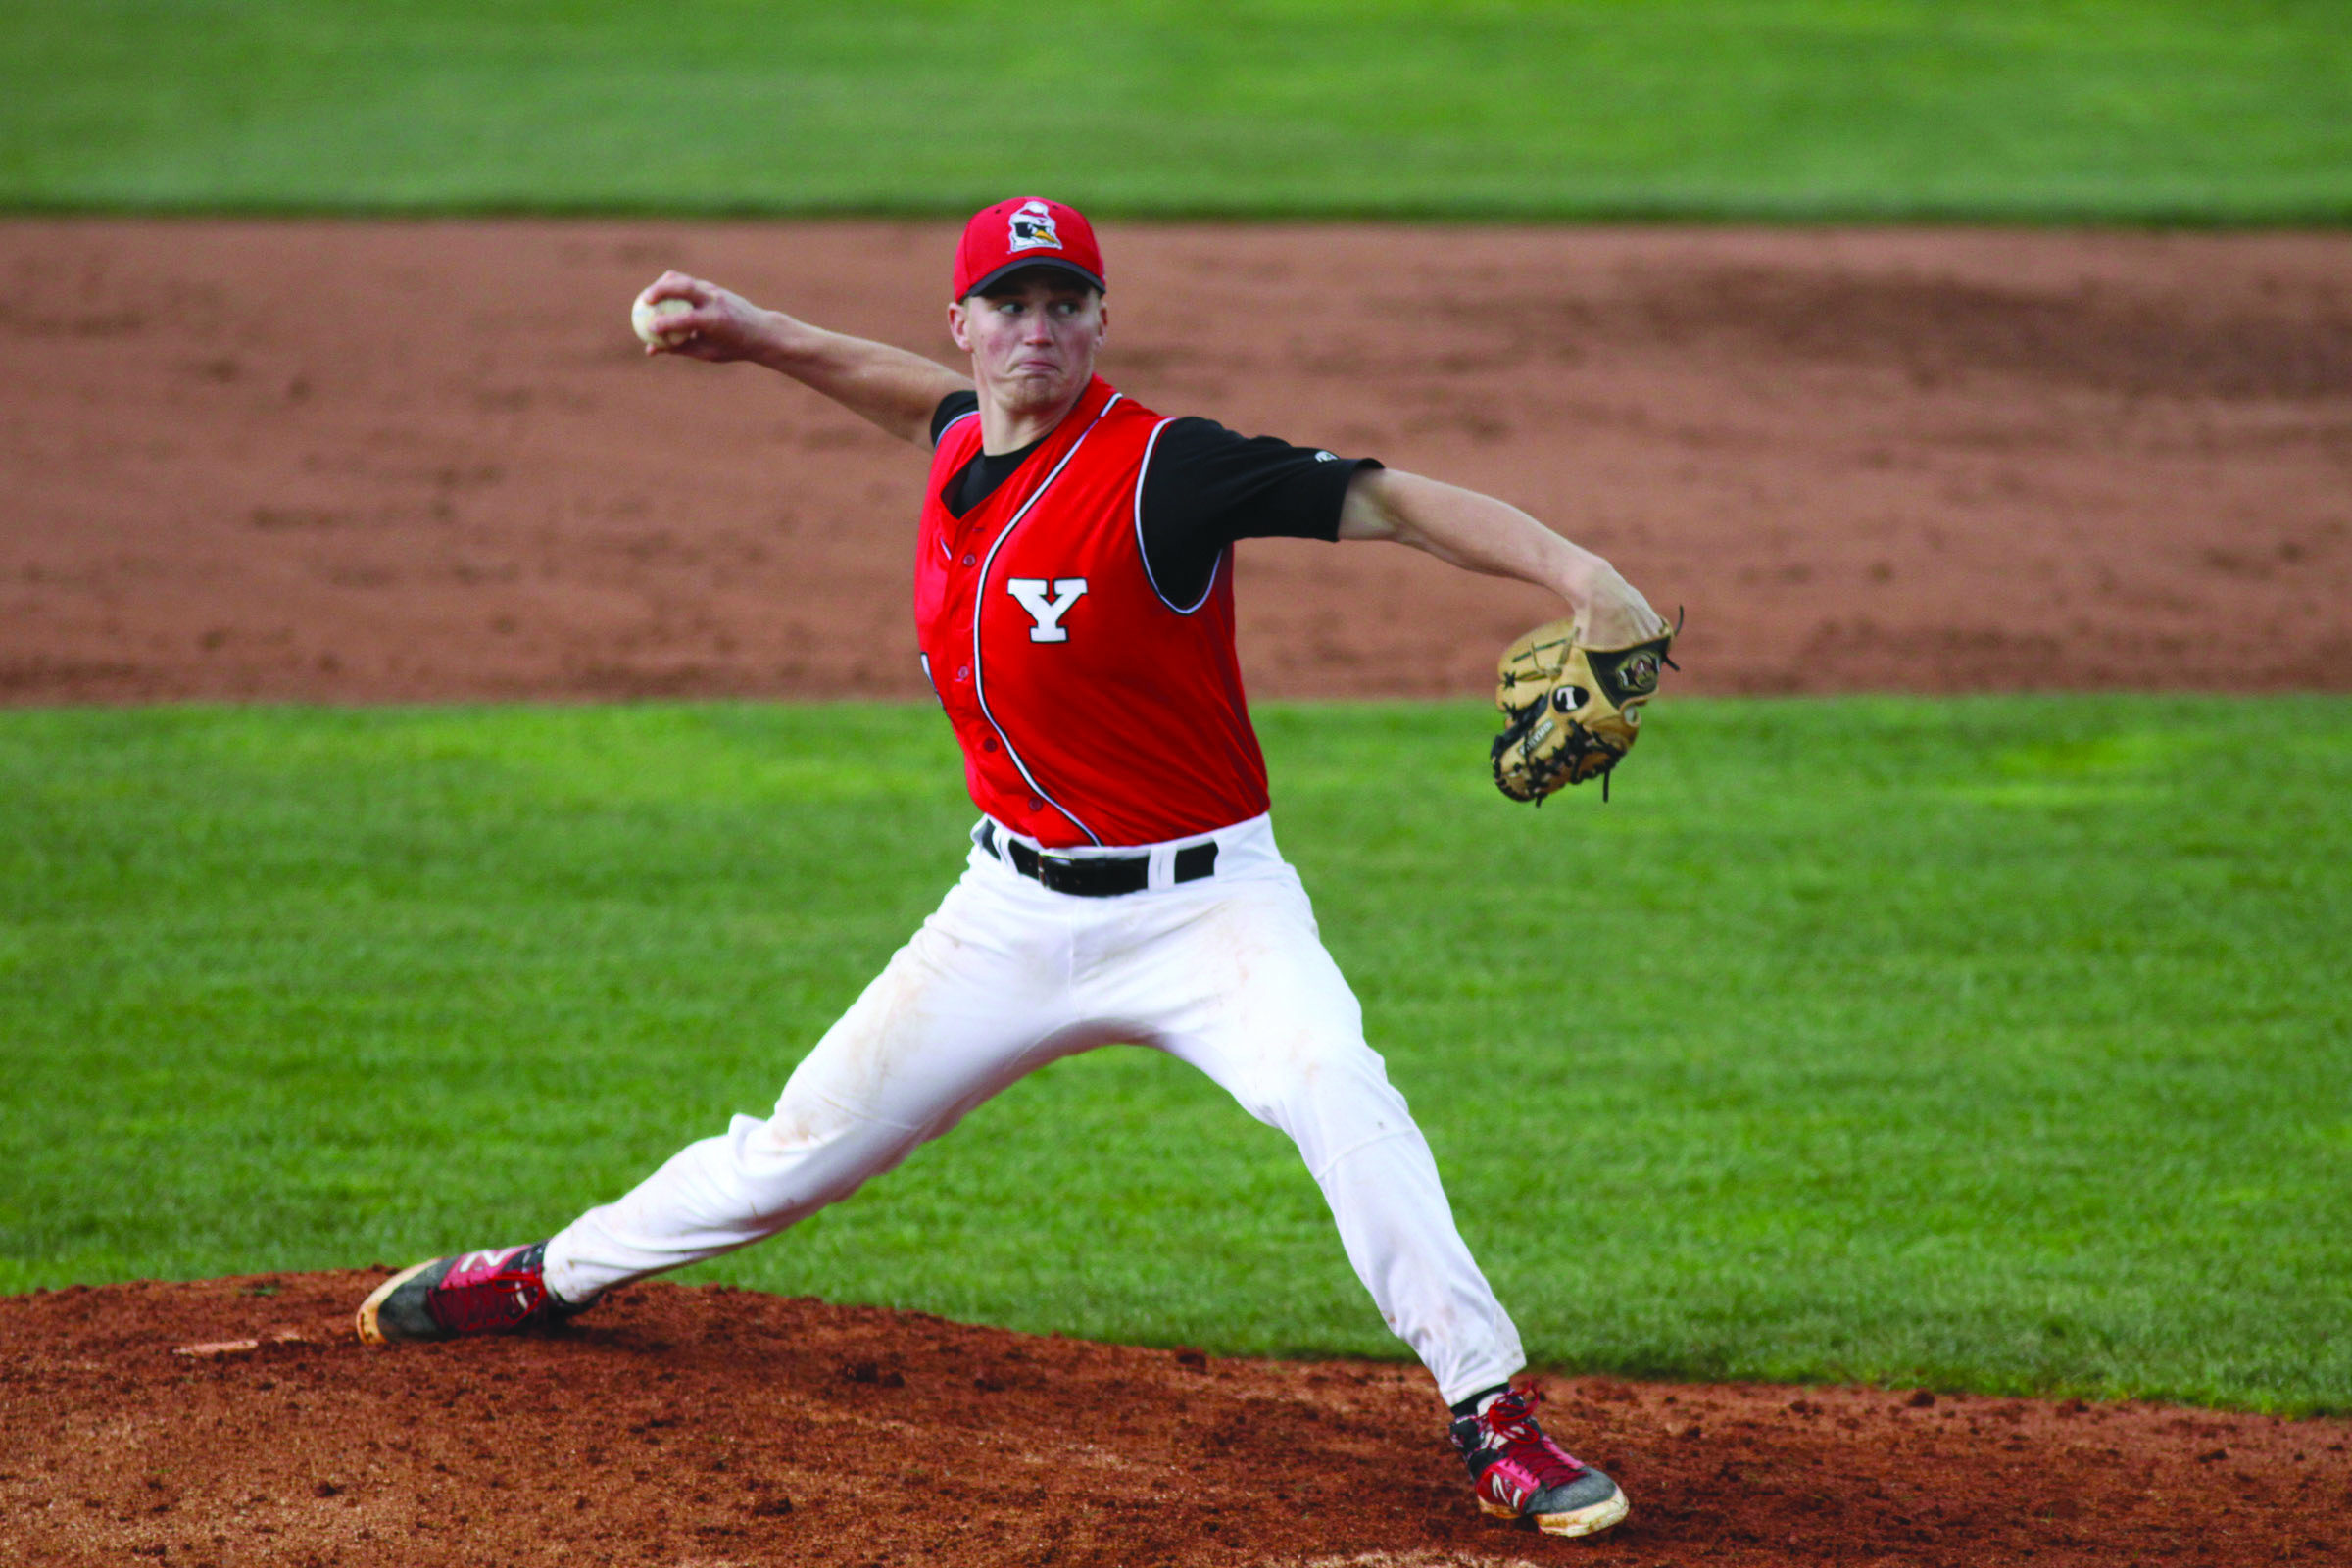 Pitcher Kevin Yarabinec has a 2-1 record with a 4.70 ERA. Yarabinec leads the team with 11 strikeouts and led the Penguins to a 5-3 win against the University of Milwaukee on March 15. Photo courtesy of Ron Stevens.